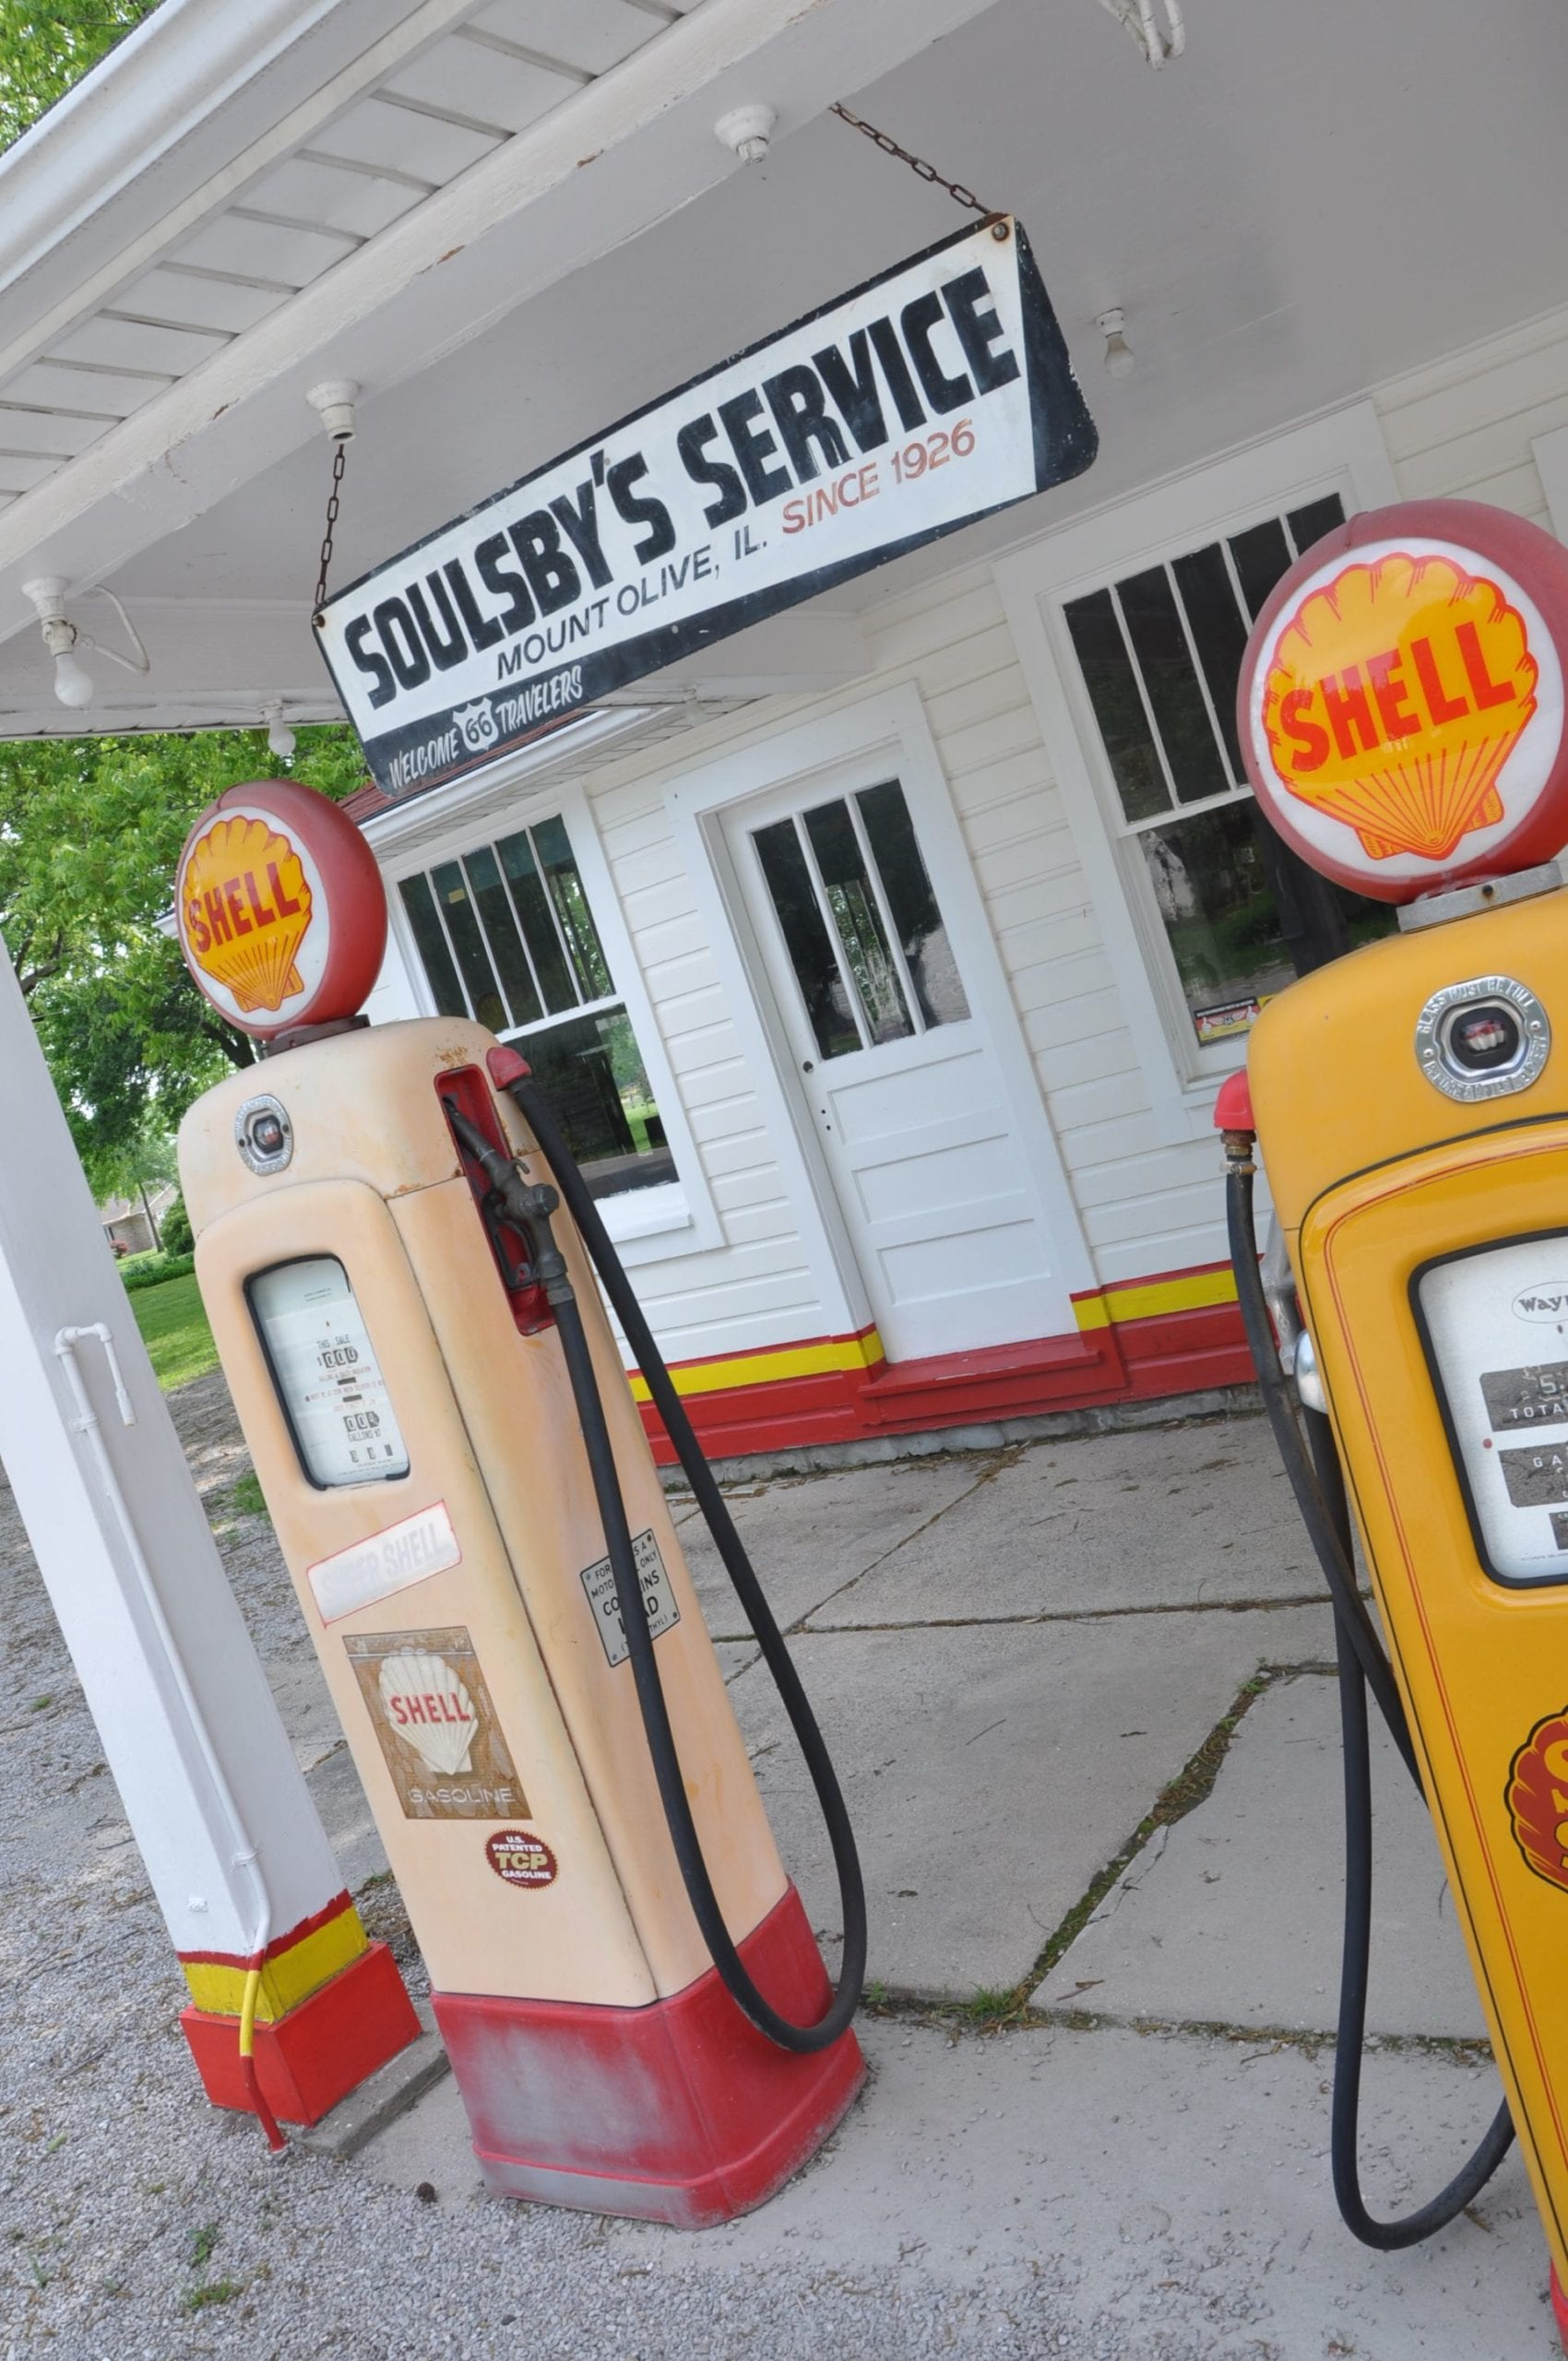 Old Petrol Pumps Route 66